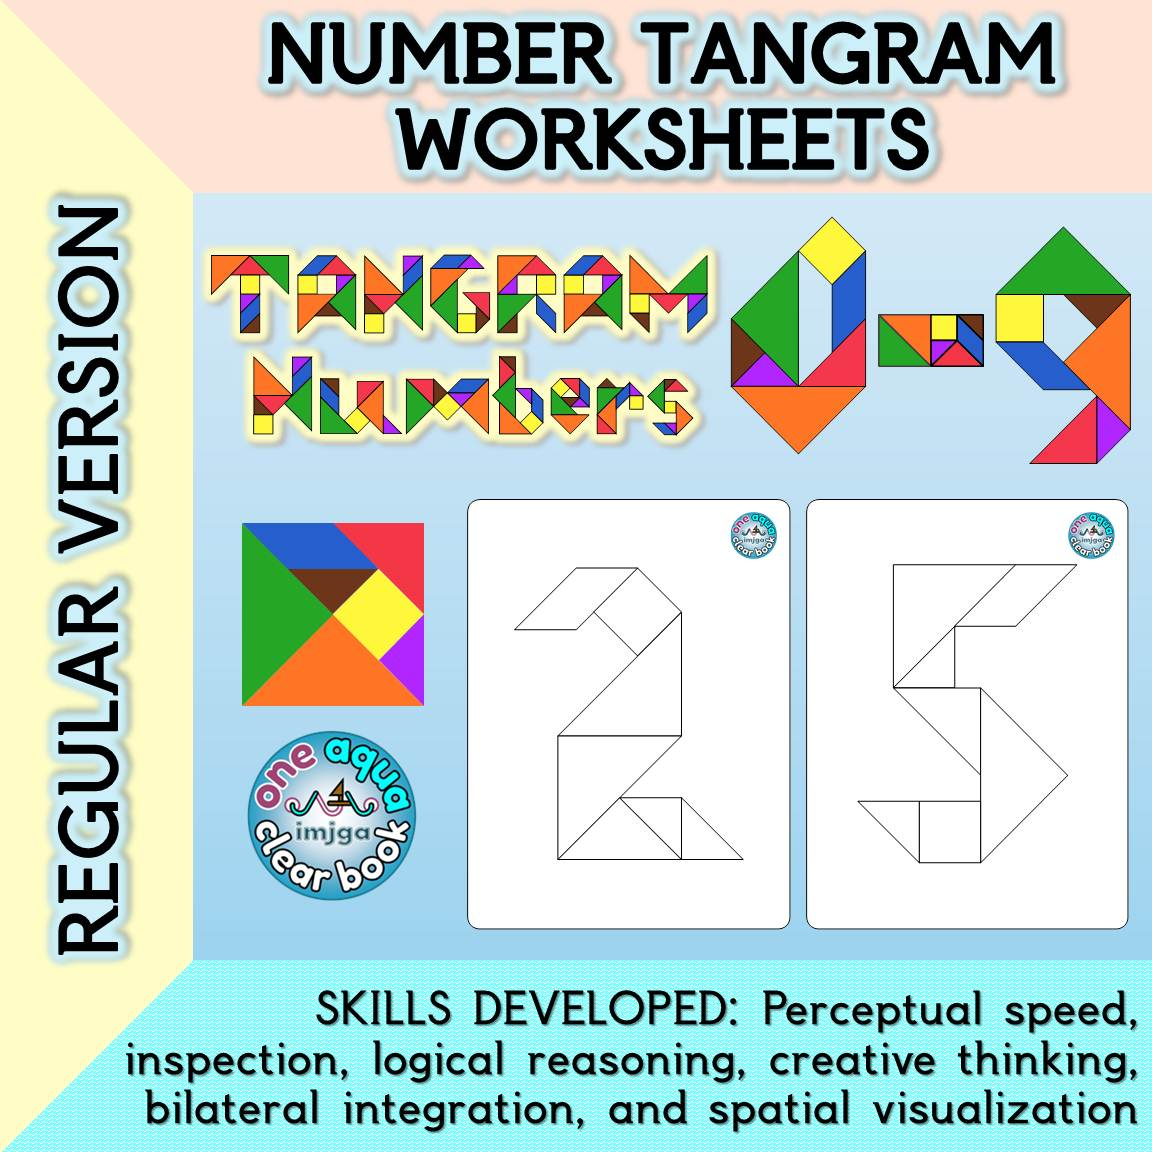 Number Tangram Worksheets Regular Version